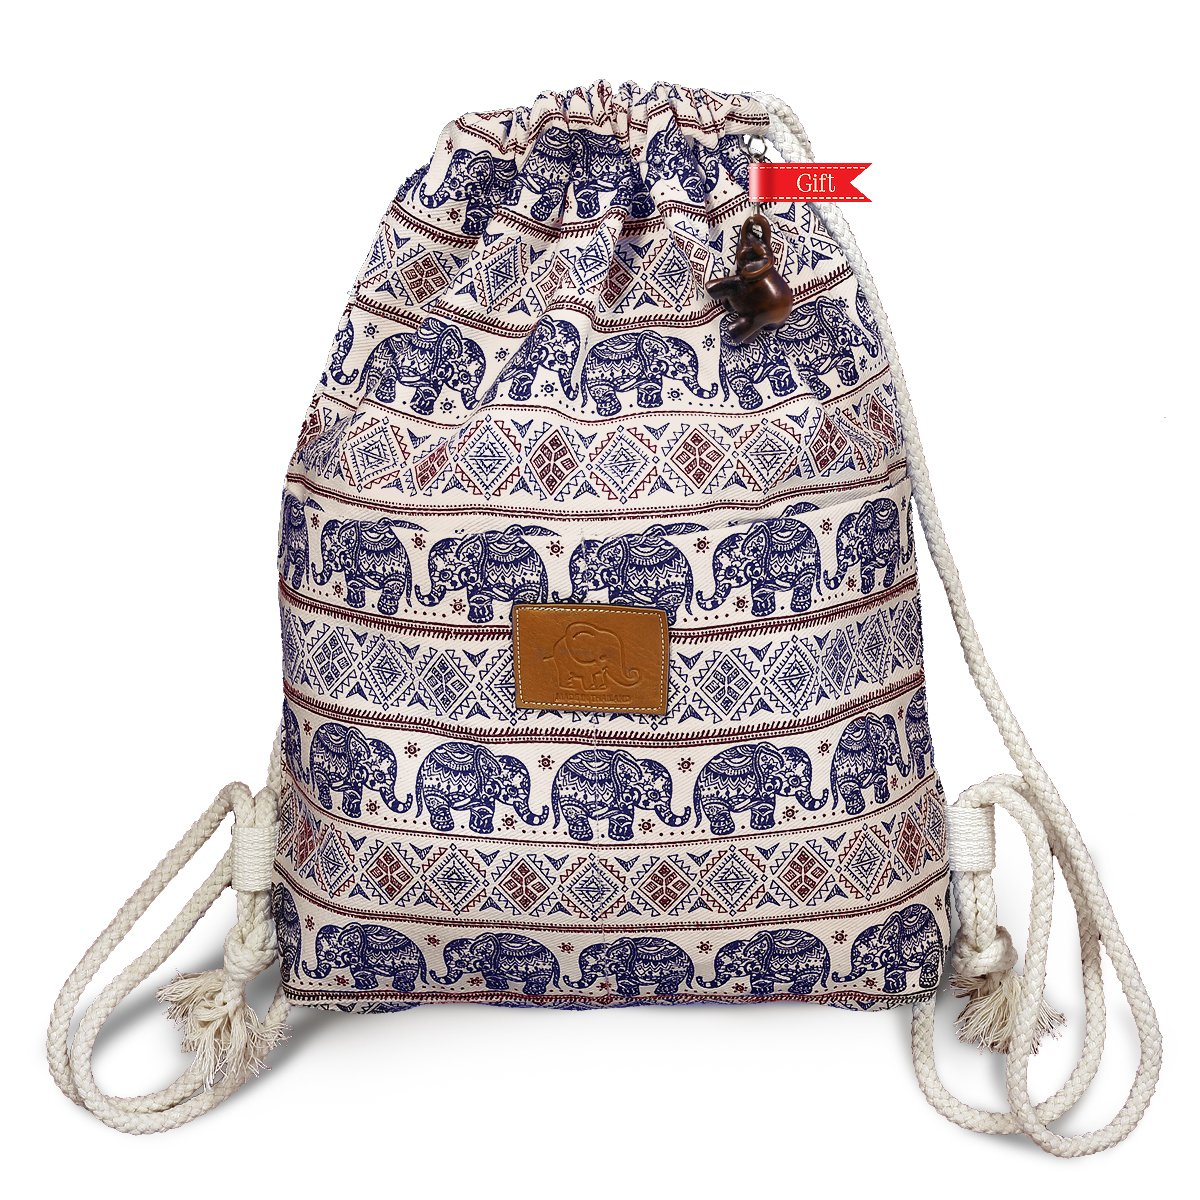 Thailand Elephant Print Drawstring Bag Medium Size 16 Inch (Navy Red Mono)